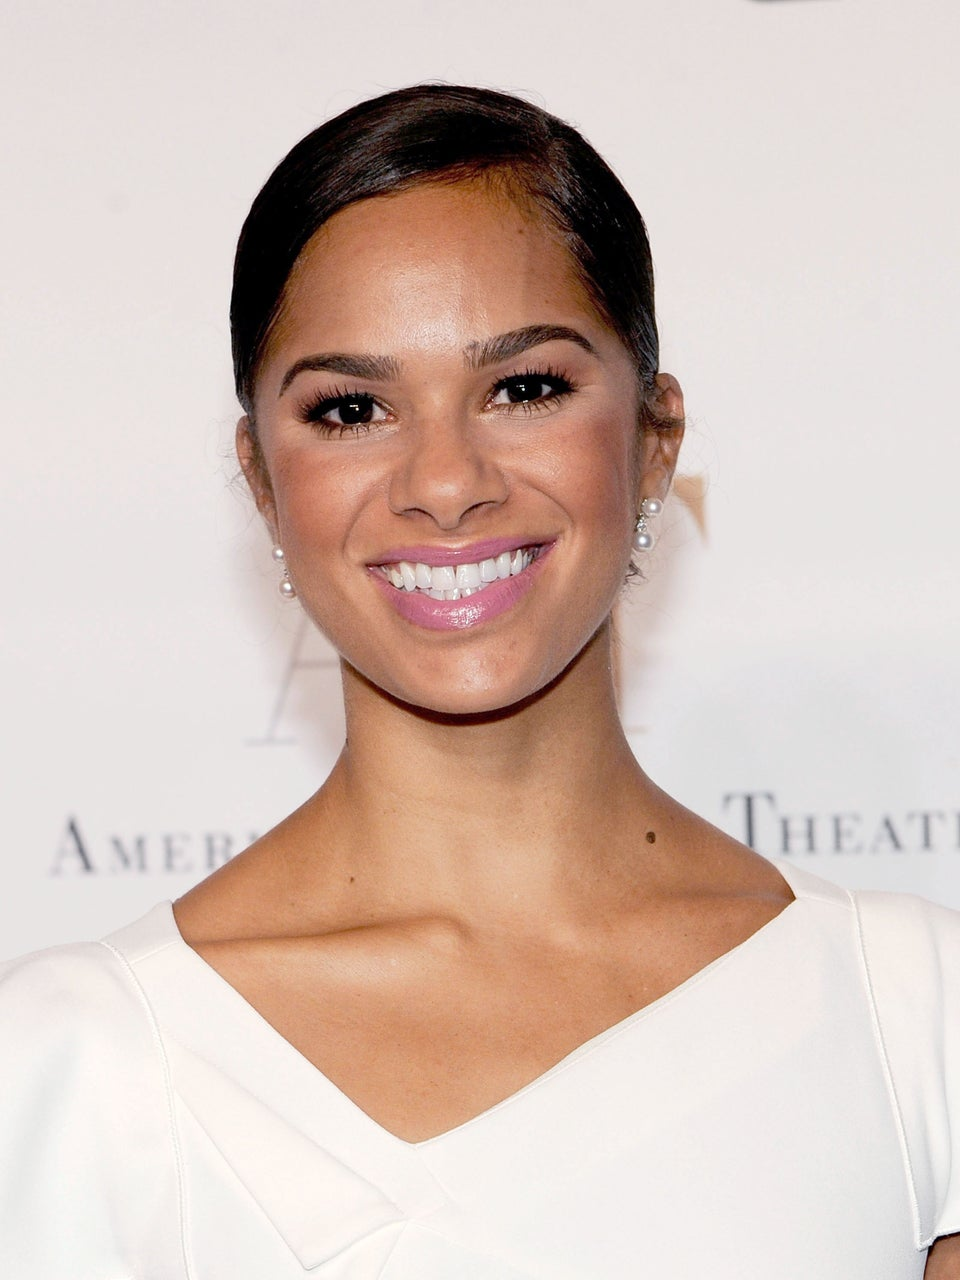 Misty Copeland Calls Out Under Armour For CEO's Trump Support